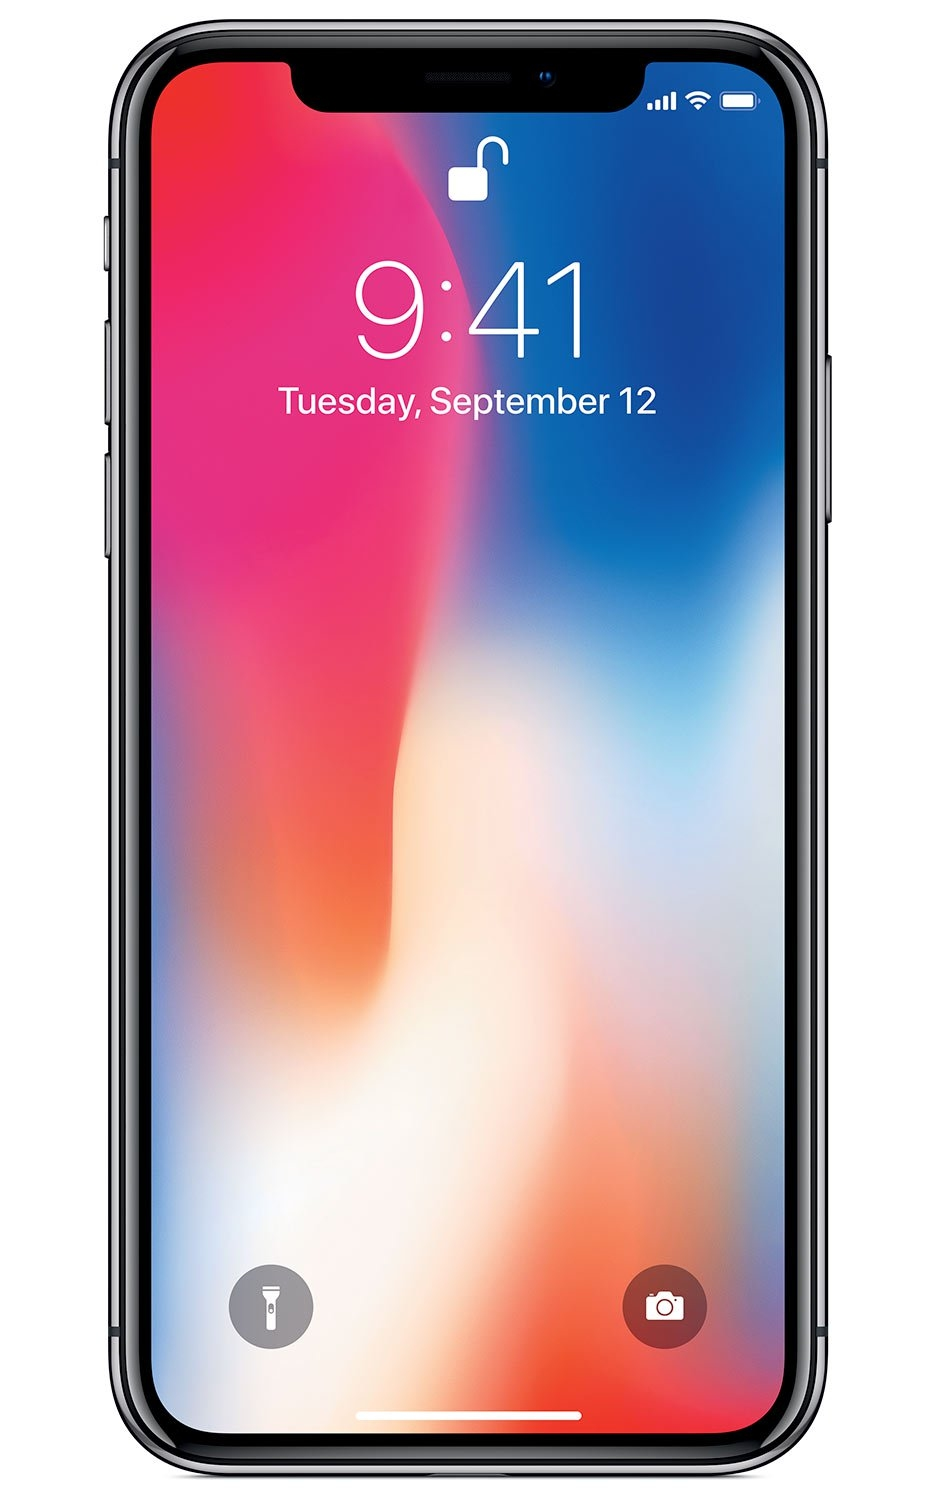 Apple iPhone X - 256GB Space Gray - 1